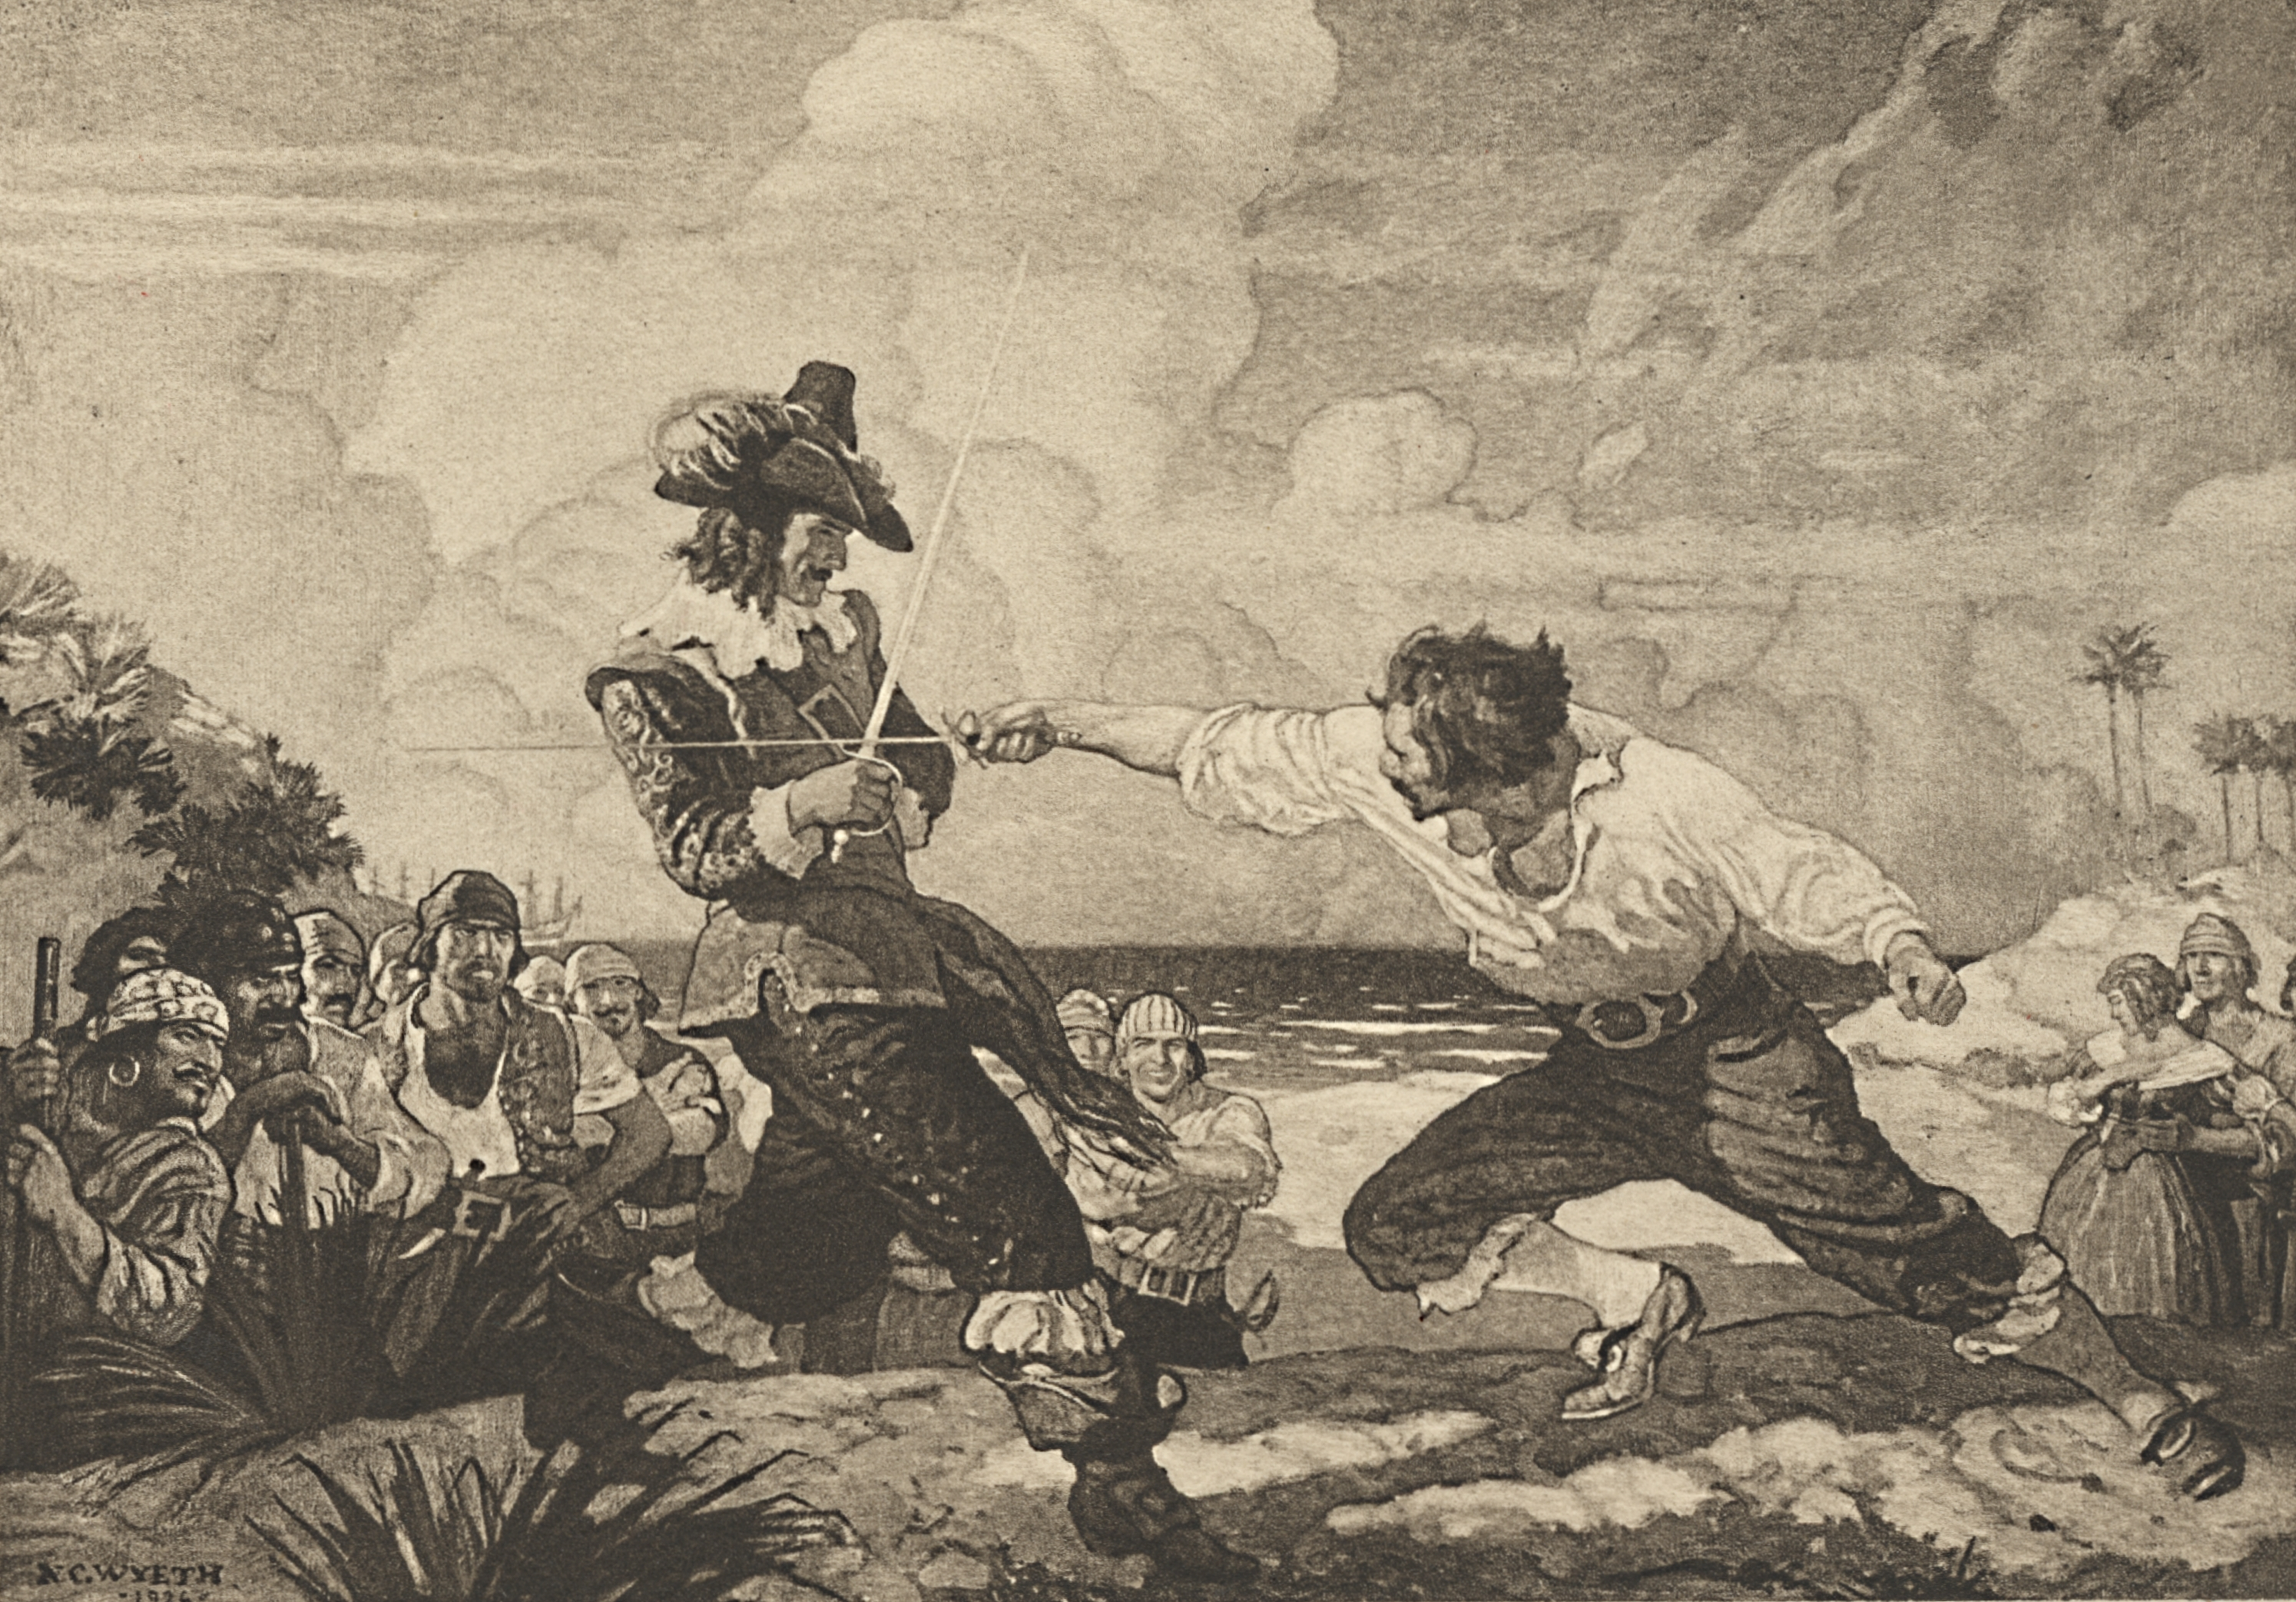 The Duel on the Beach, Part I: In Fiction